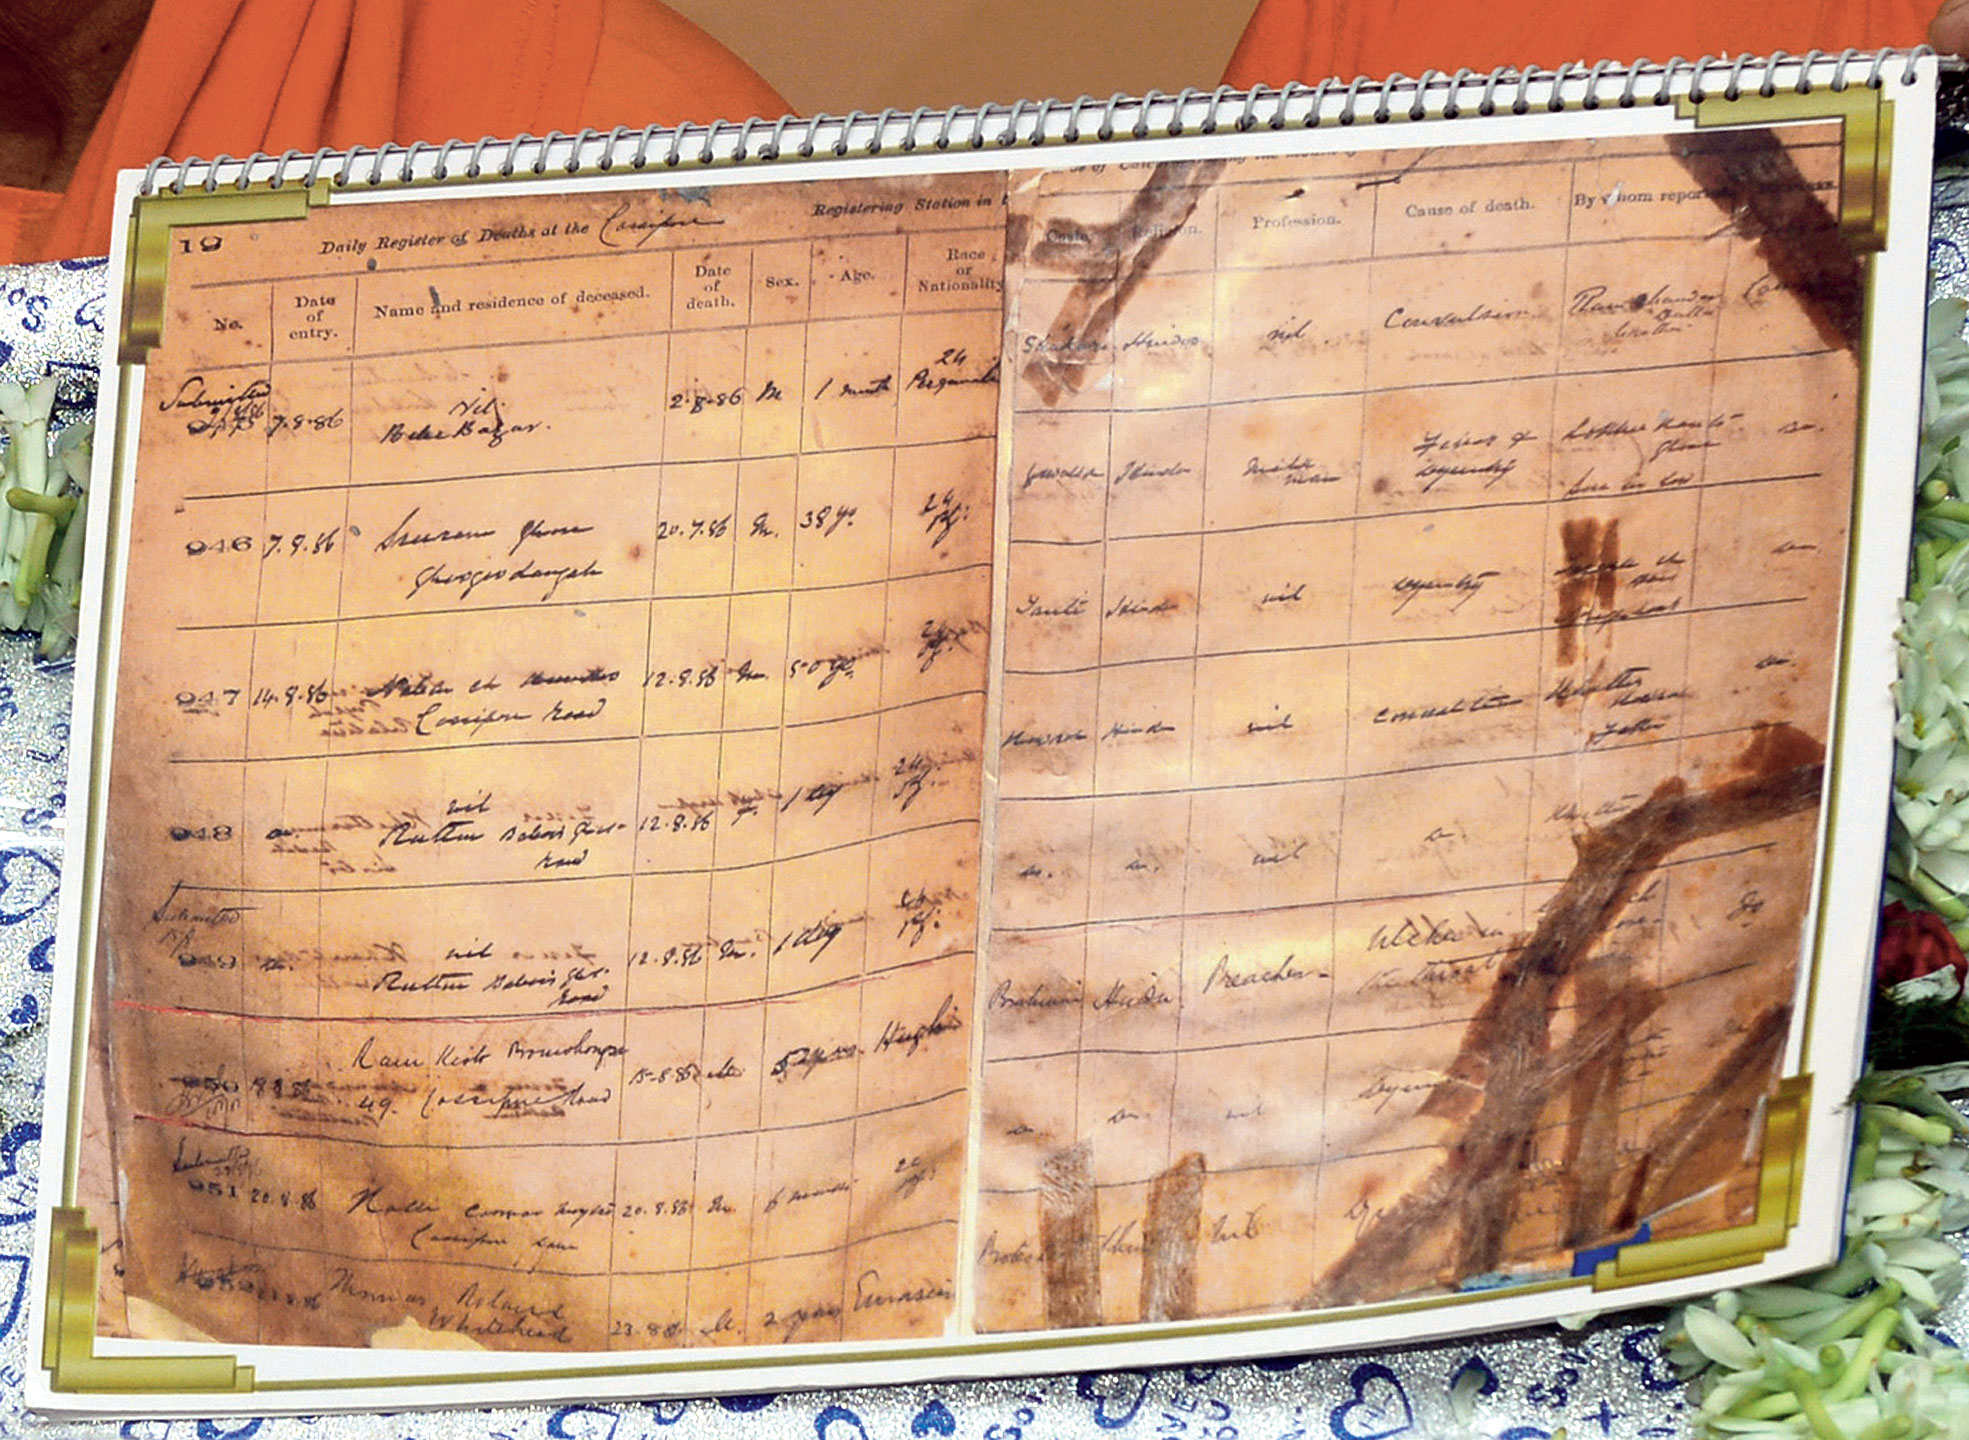 """A page of the death register of Cossipore police station that shows an entry (marked with arrow) mentioning the death of """"Ram Kisto Promohongsa"""", who is popularly known as Ramakrishna Paramhansa"""